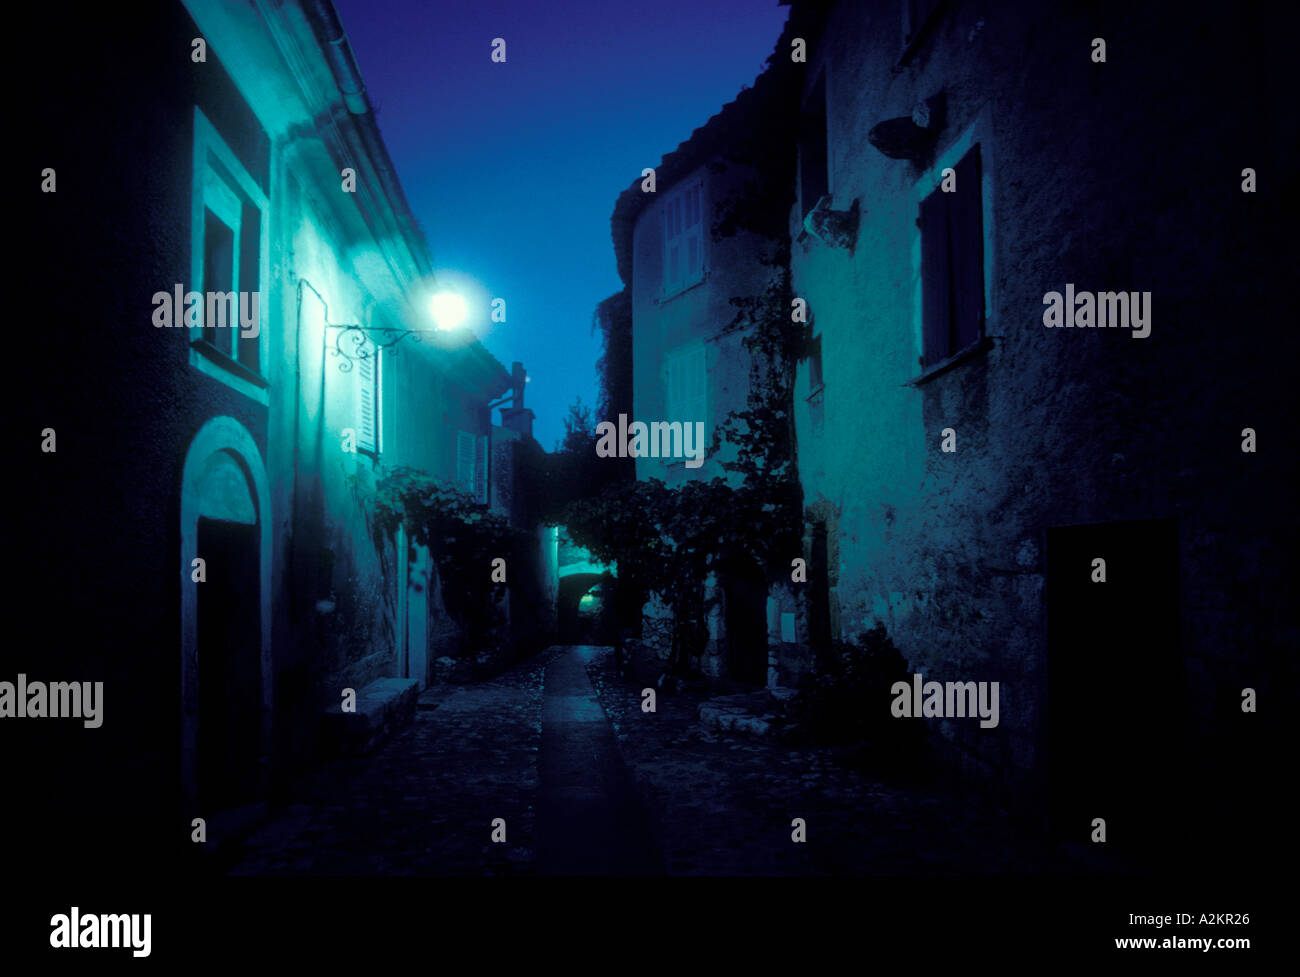 At dusk streetlight illuminates an alley in Eze a medieval walled city in the Cote D Azur on the French Riviera - Stock Image